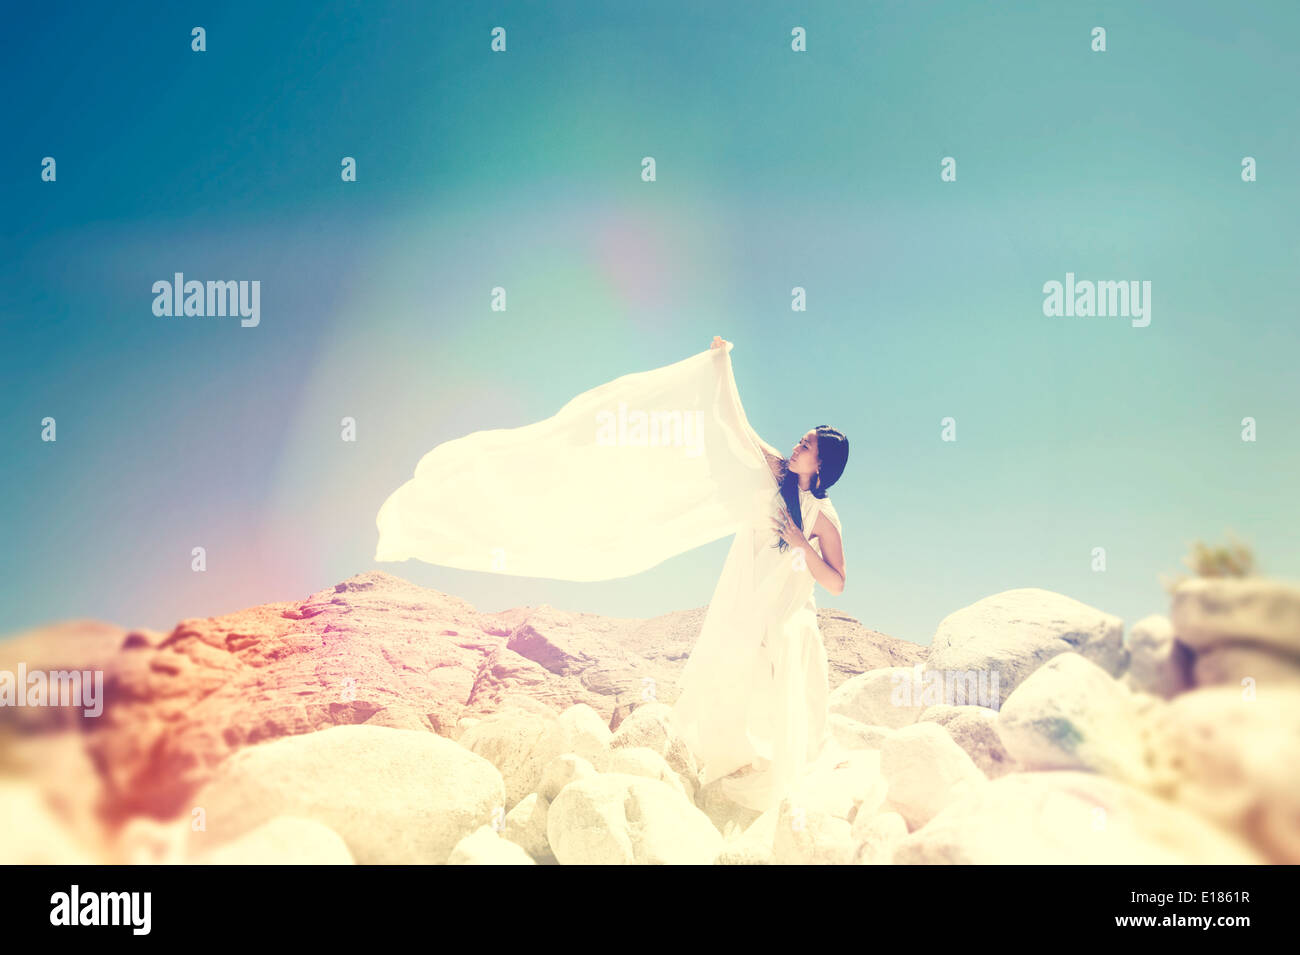 Woman in white on a mountain top. - Stock Image